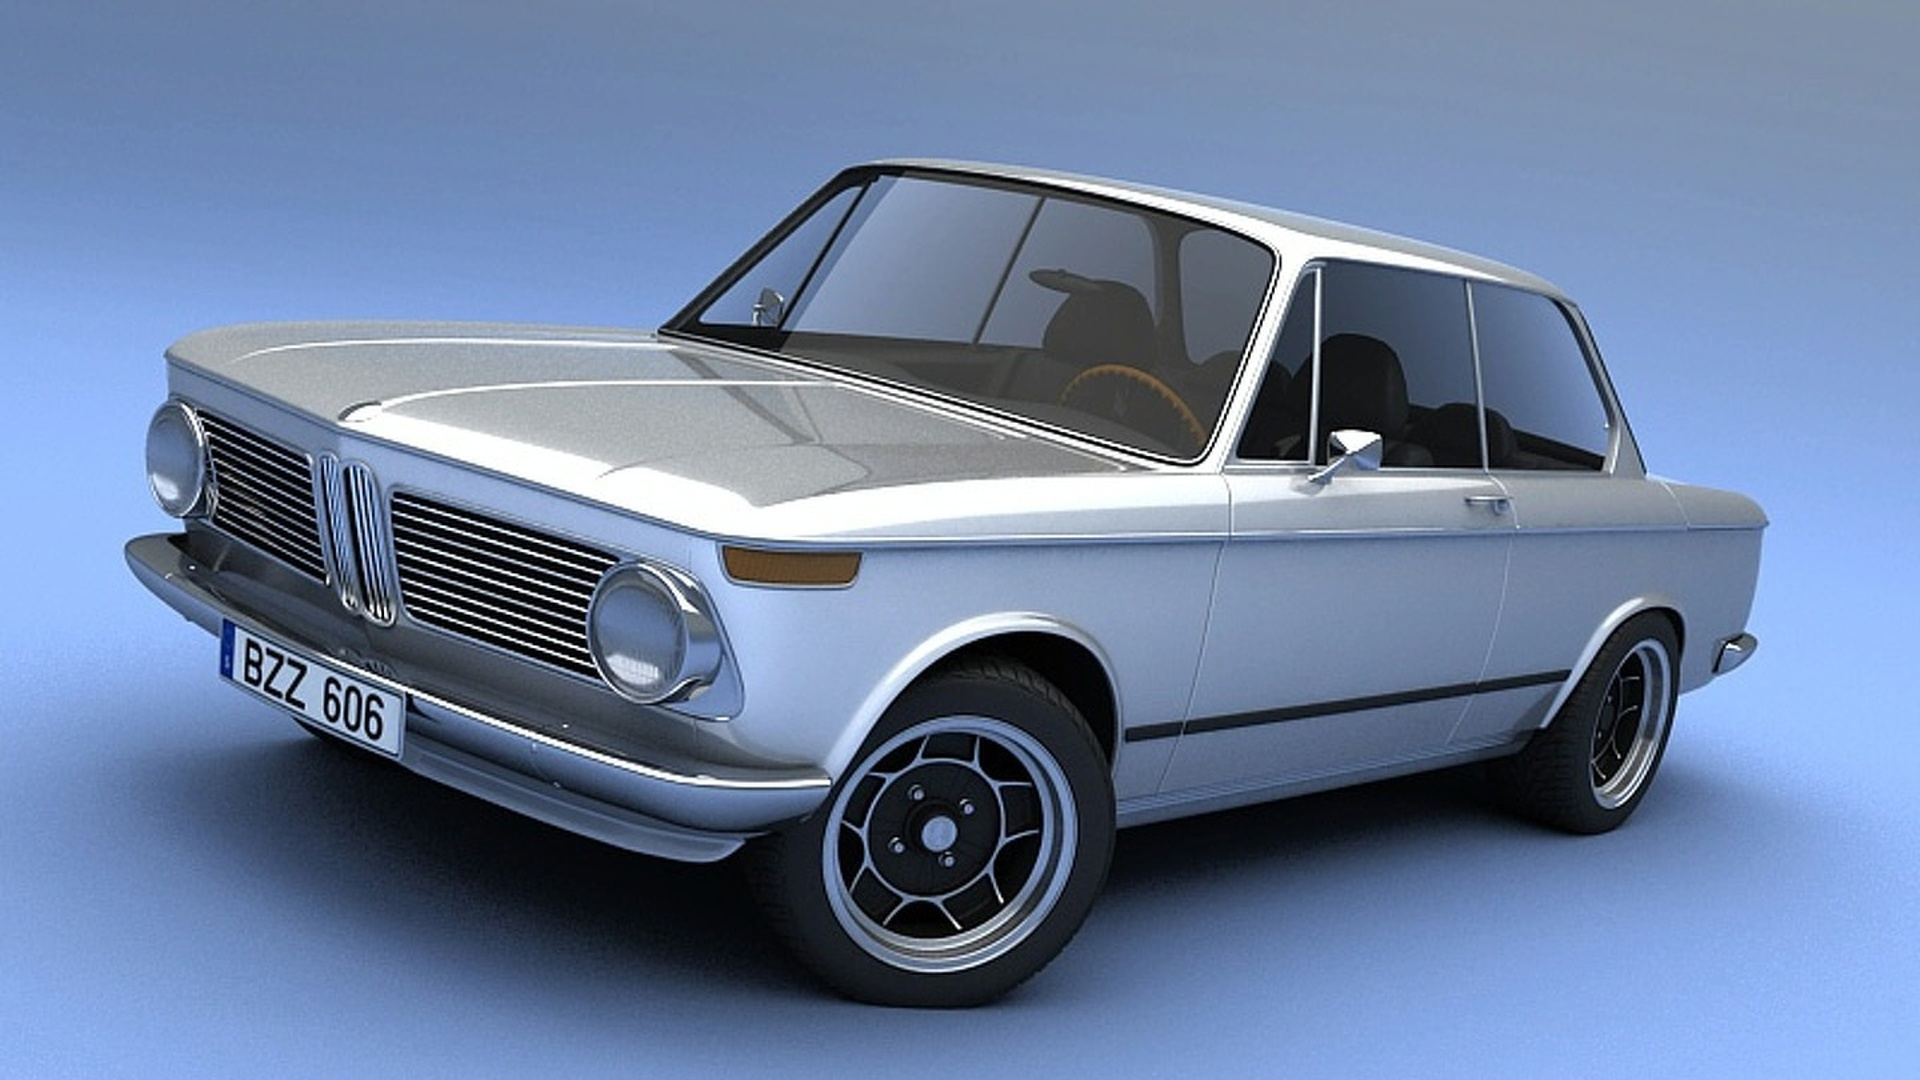 Bmw 2002 Tii For Sale >> 3D Rendered: Vizualtech Pays Tribute to BMW 2002